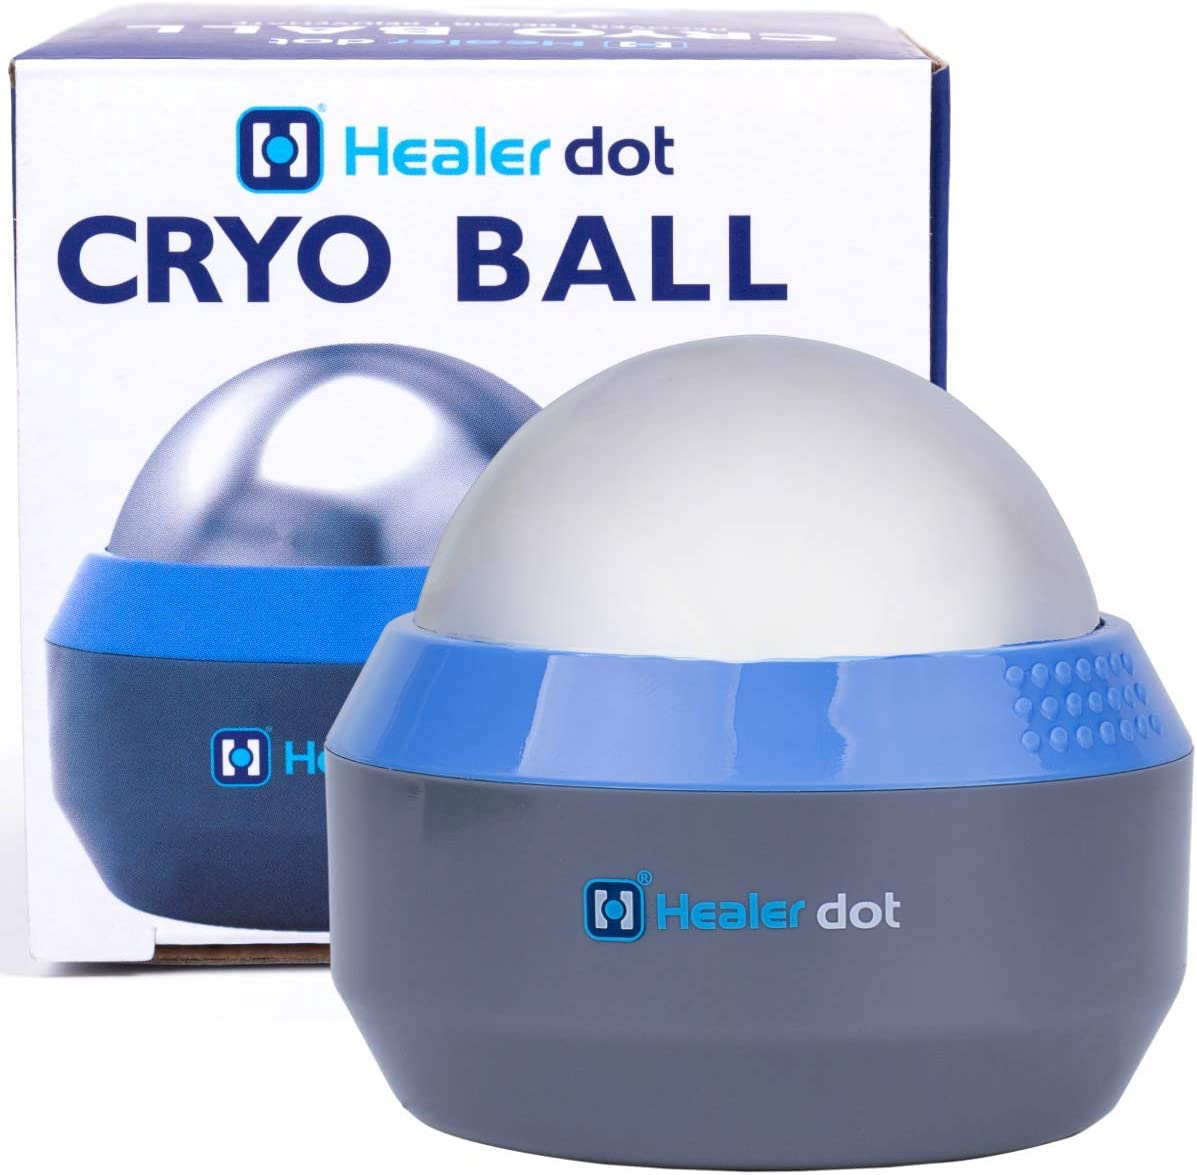 Healer dot Ice Muscle Fitness Roller – Deep Tissue Cold Massage Ball – Cold Gel Core – Reduces Inflammation & Swelling – Convenient & User-Friendly – Rapid Workout Recovery – Portable Design